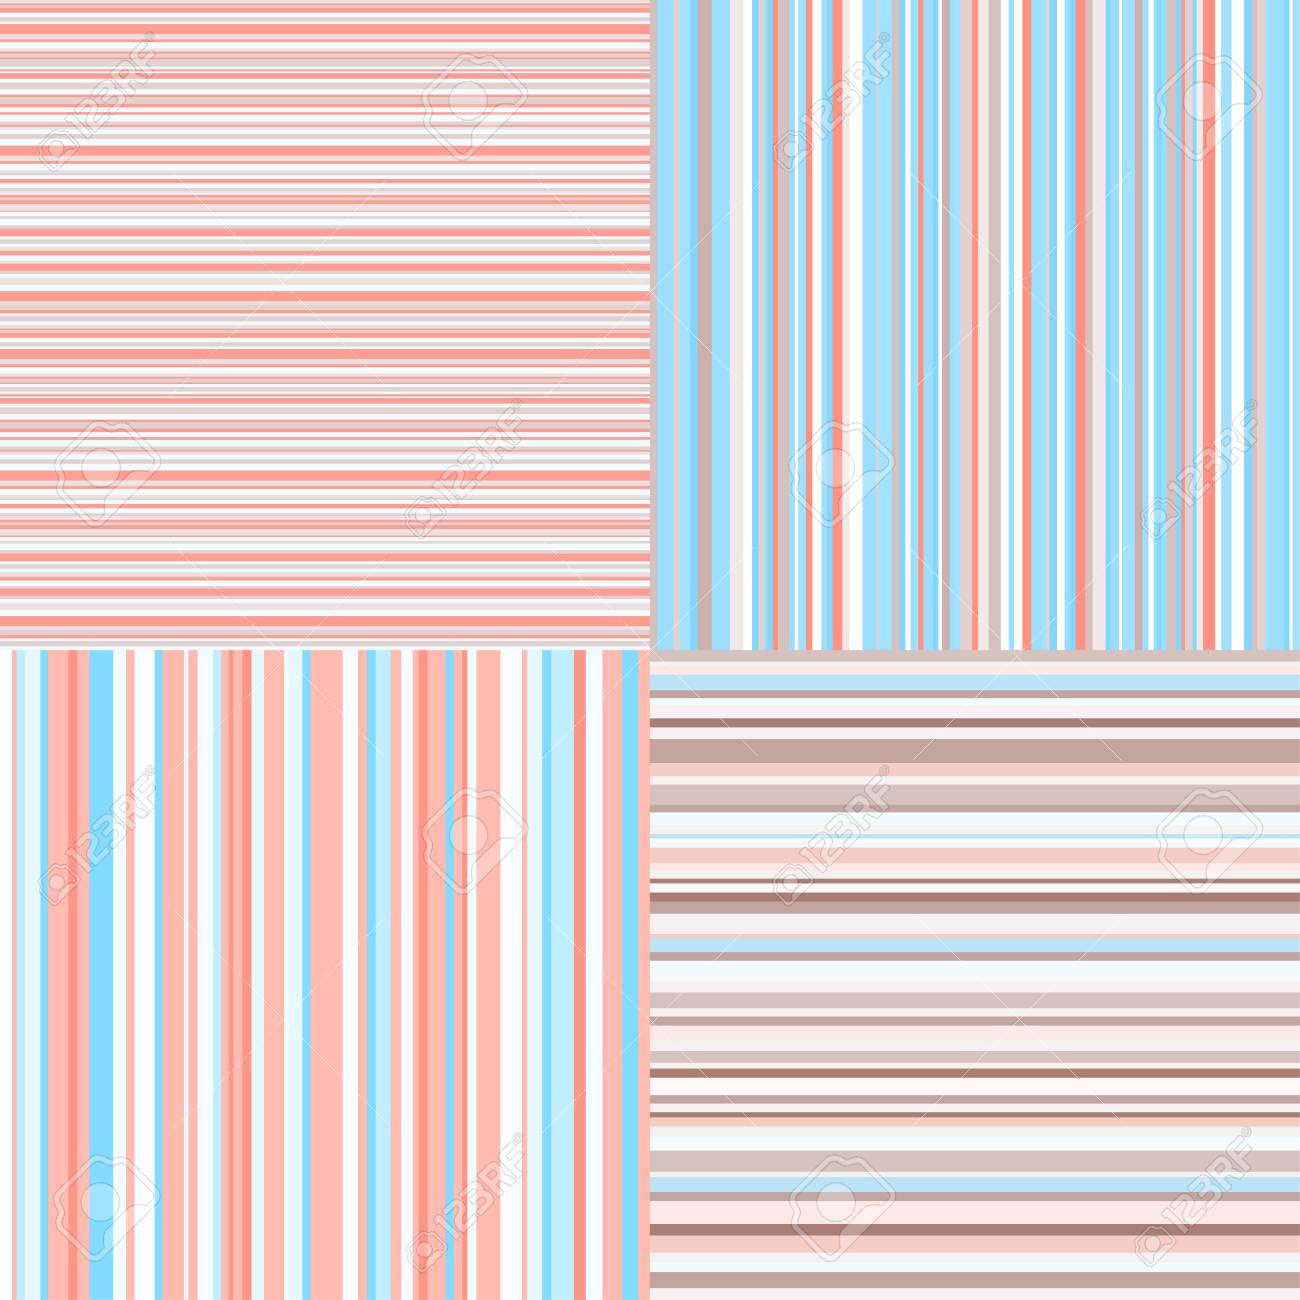 Set Of Seamless Colored Patterns Pretty Pastel Colors Abstract